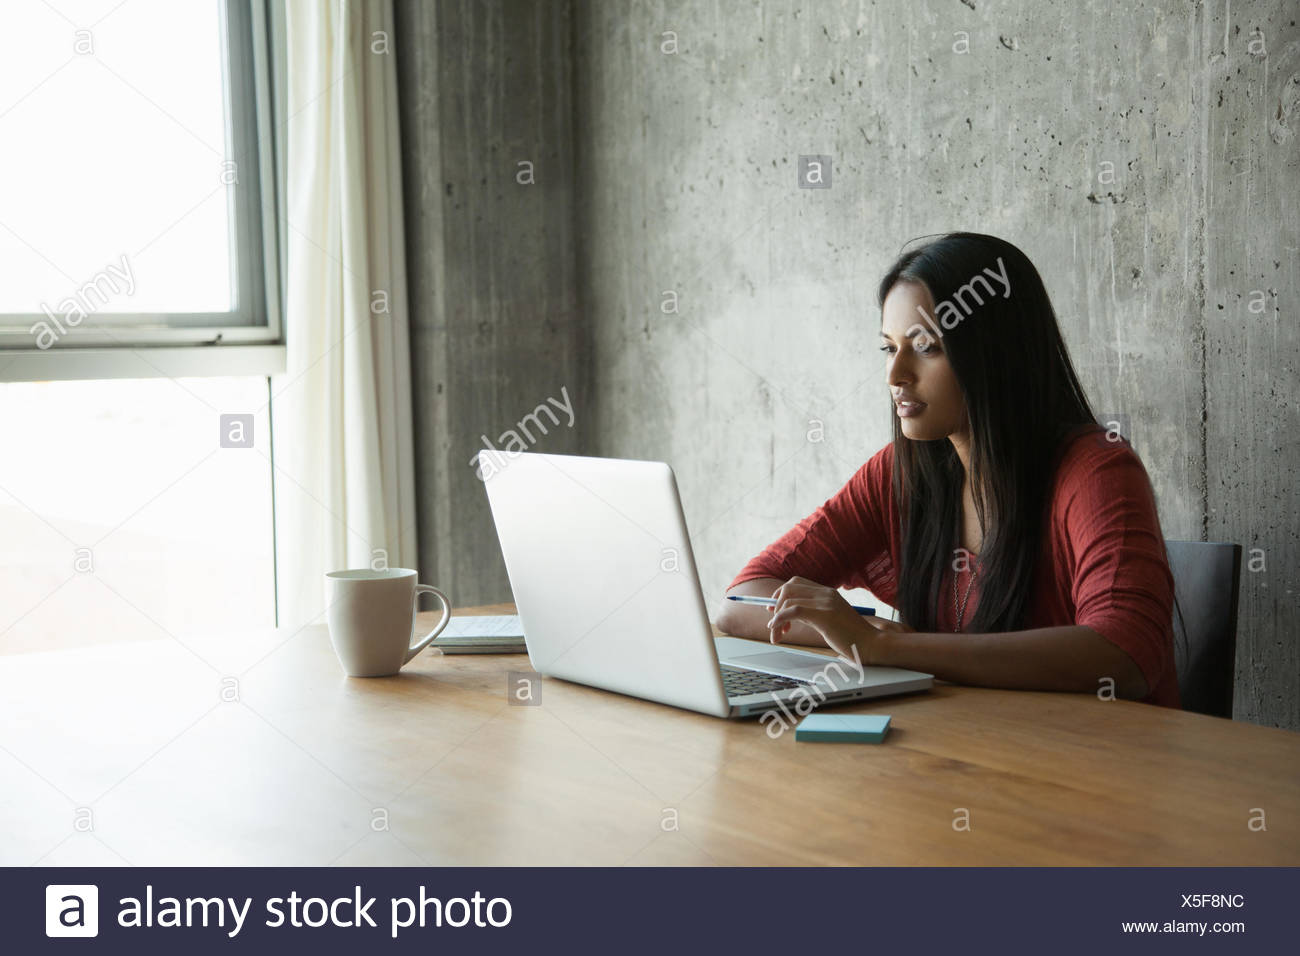 Woman using laptop at home Photo Stock